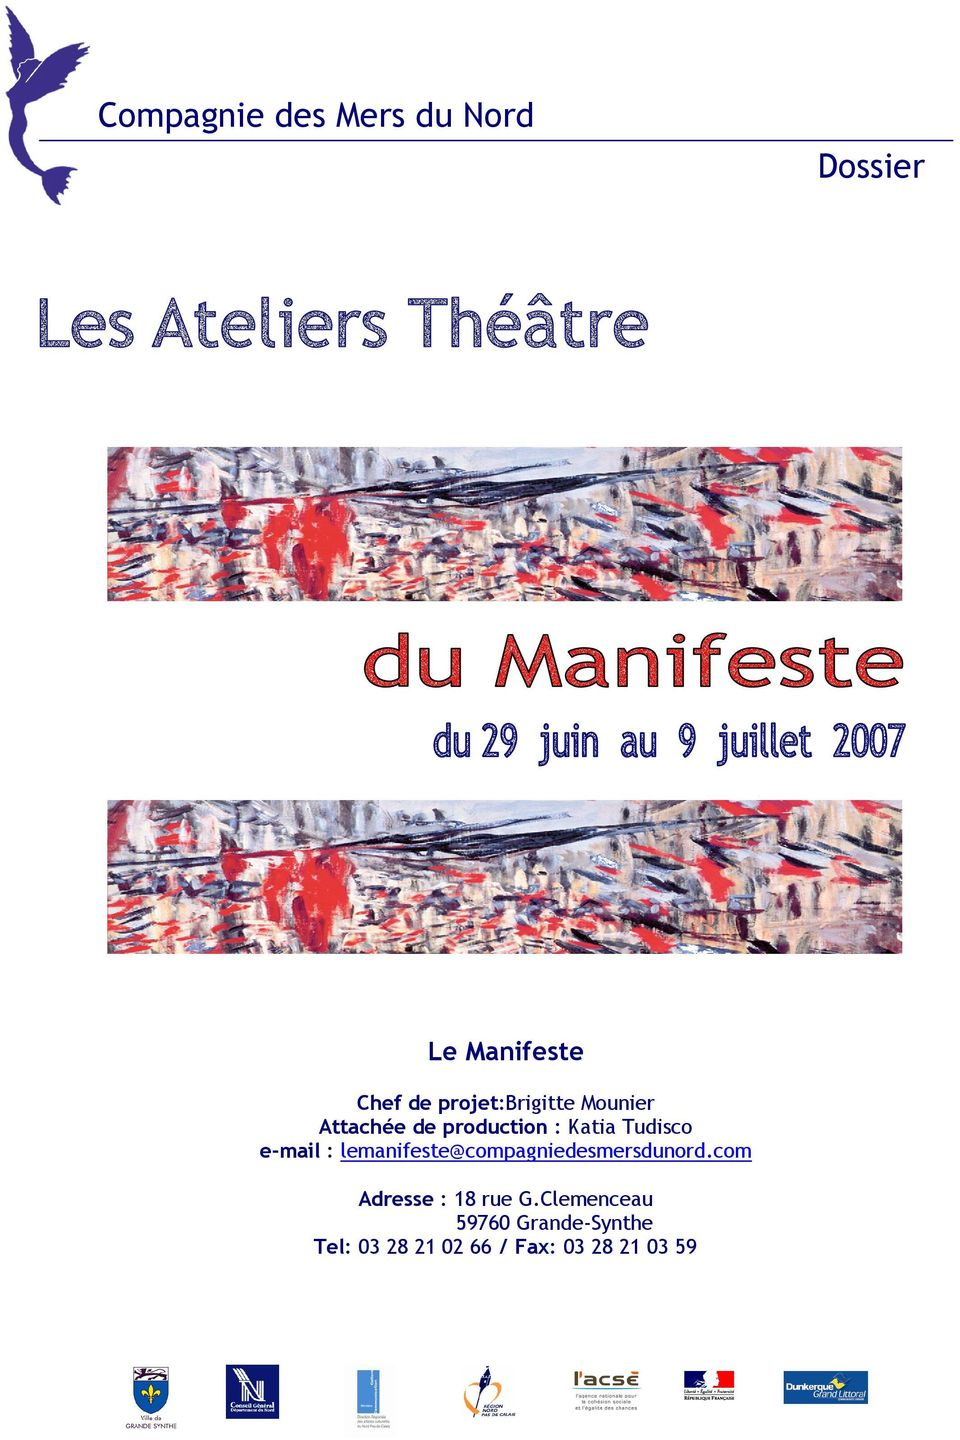 e-mail : lemanifeste@compagniedesmersdunord.